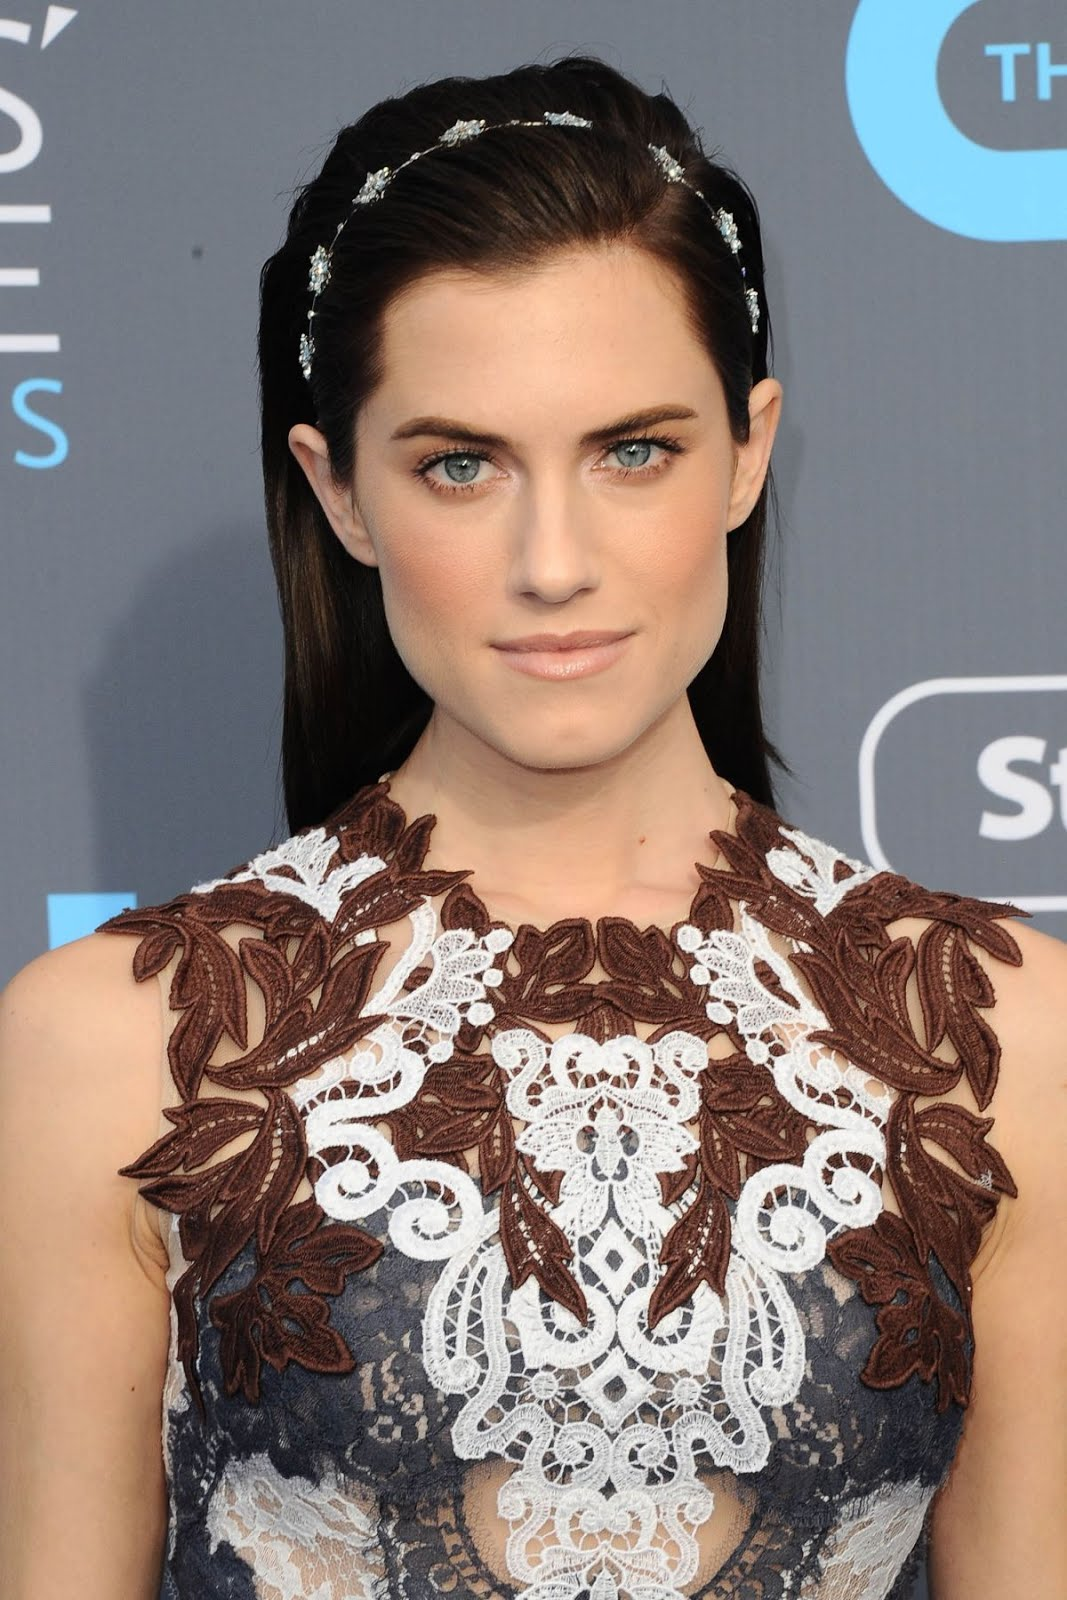 Allison Williams in chocolate dress at 2018 critics Choice Awards In Santa Monica